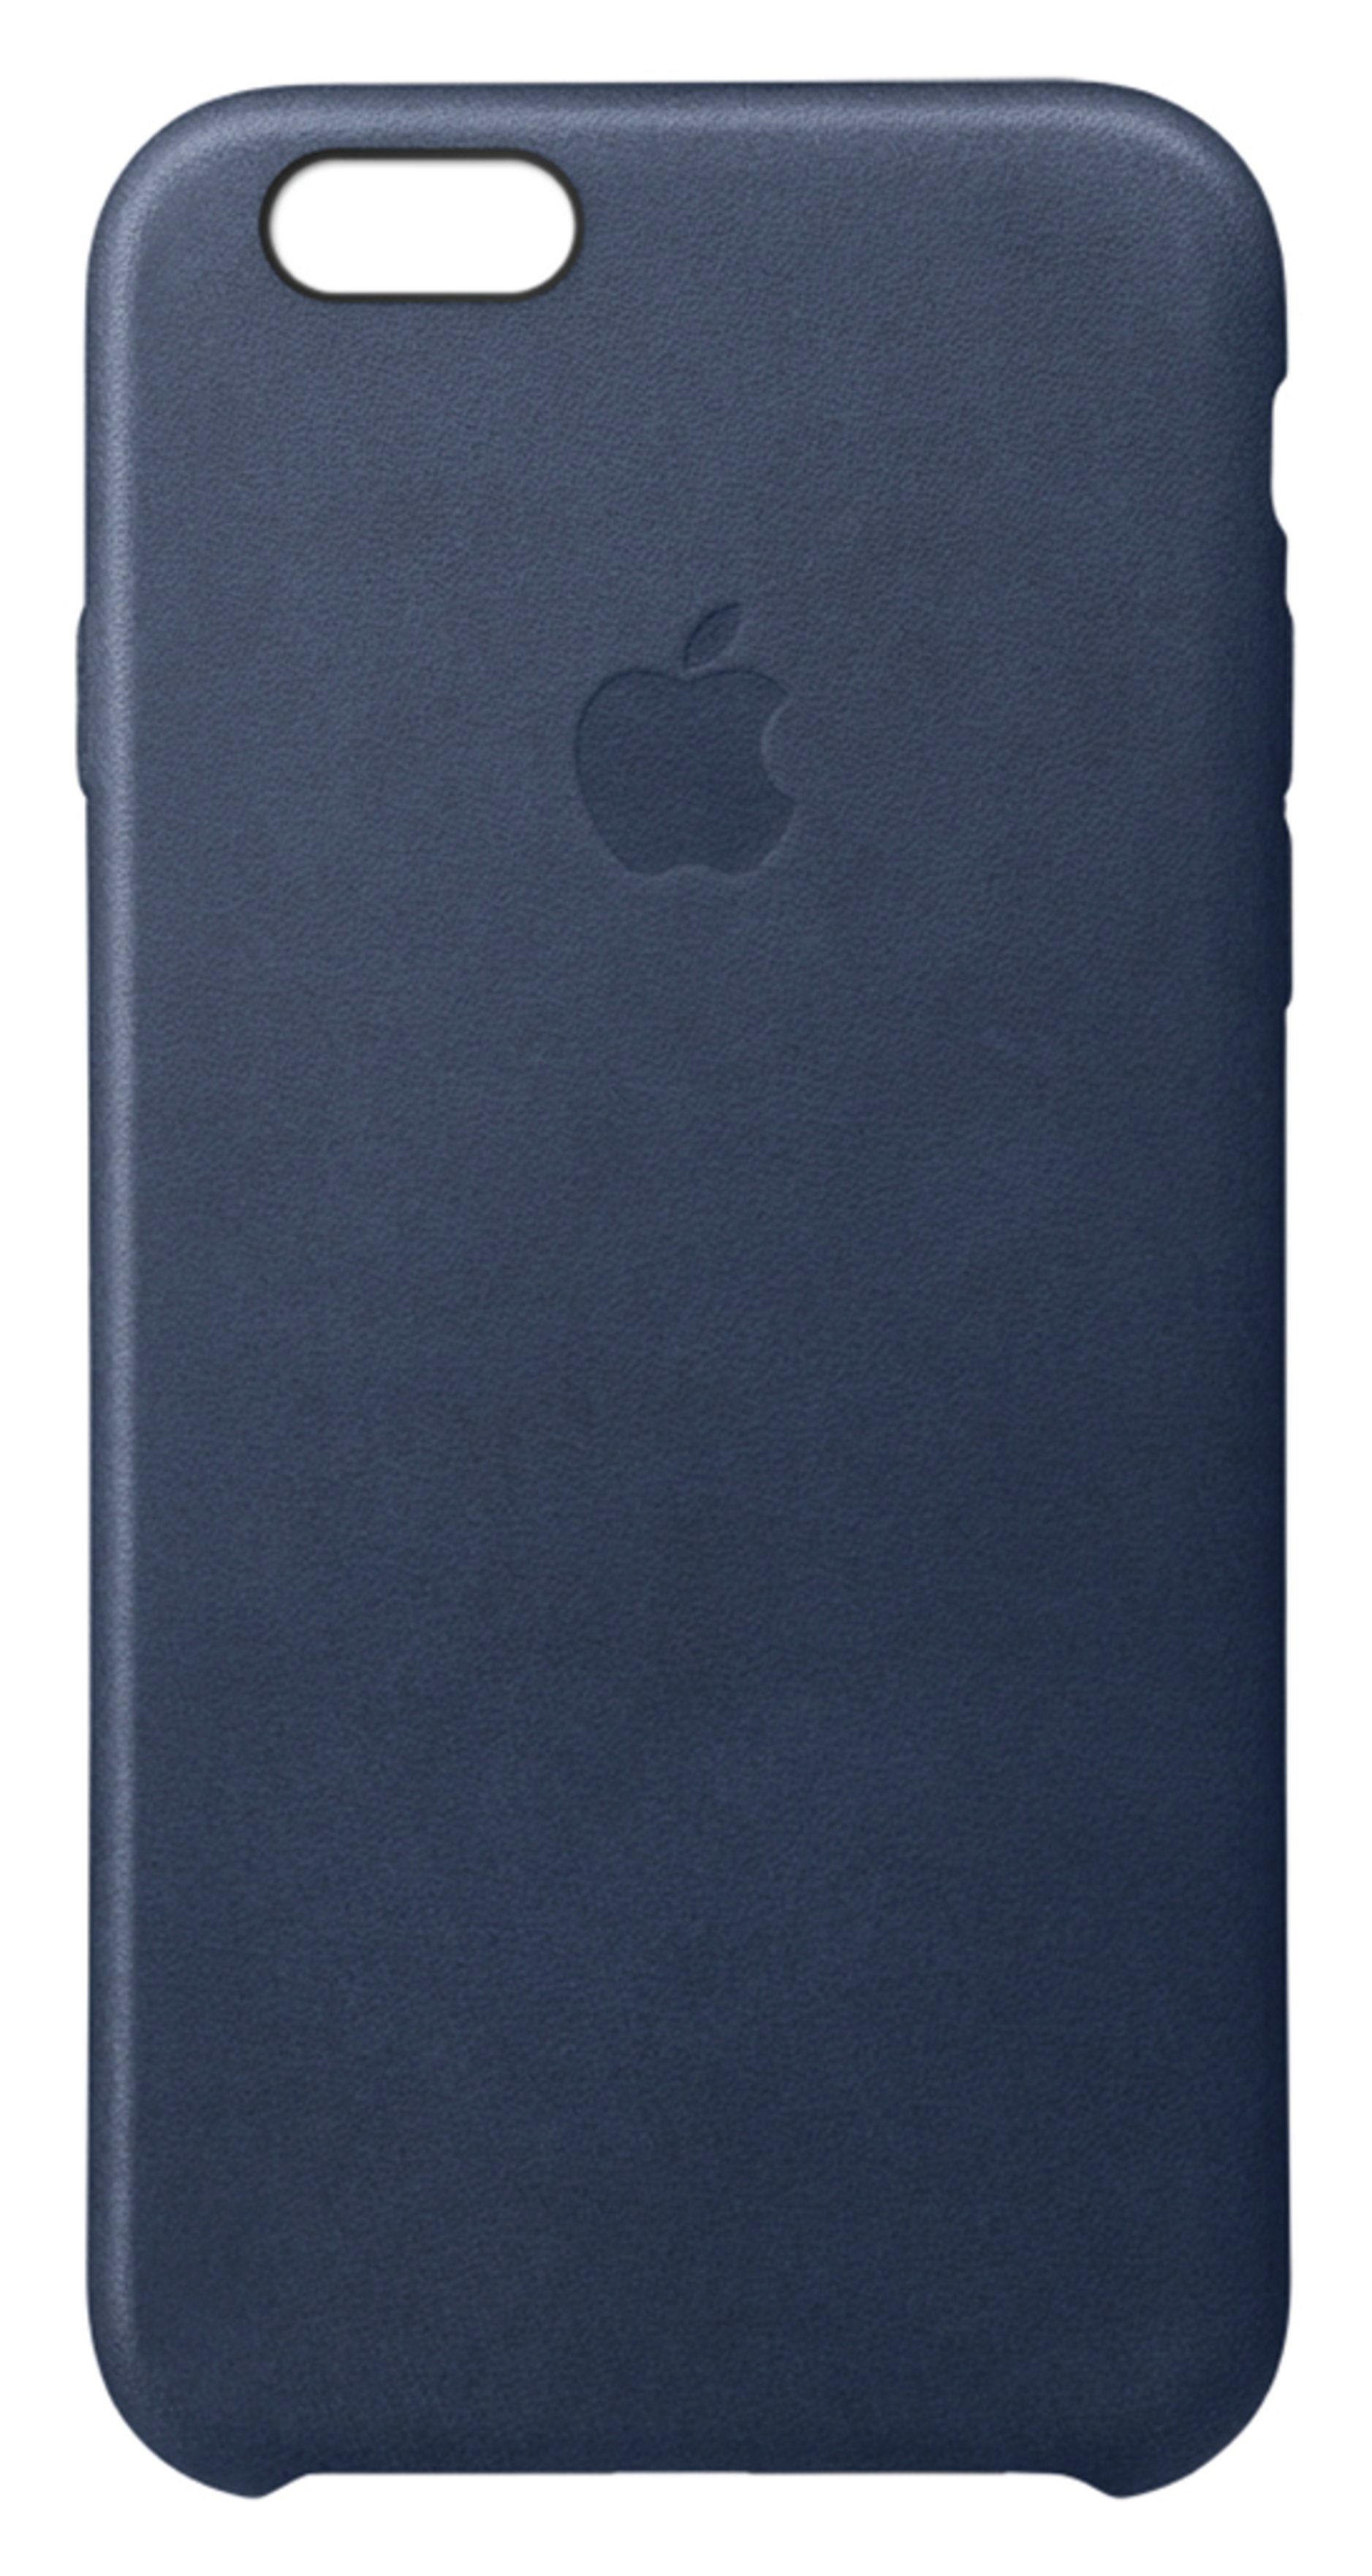 Apple iPhone 6/ 6S Leather Case - Midnight Blue cheapest retail price